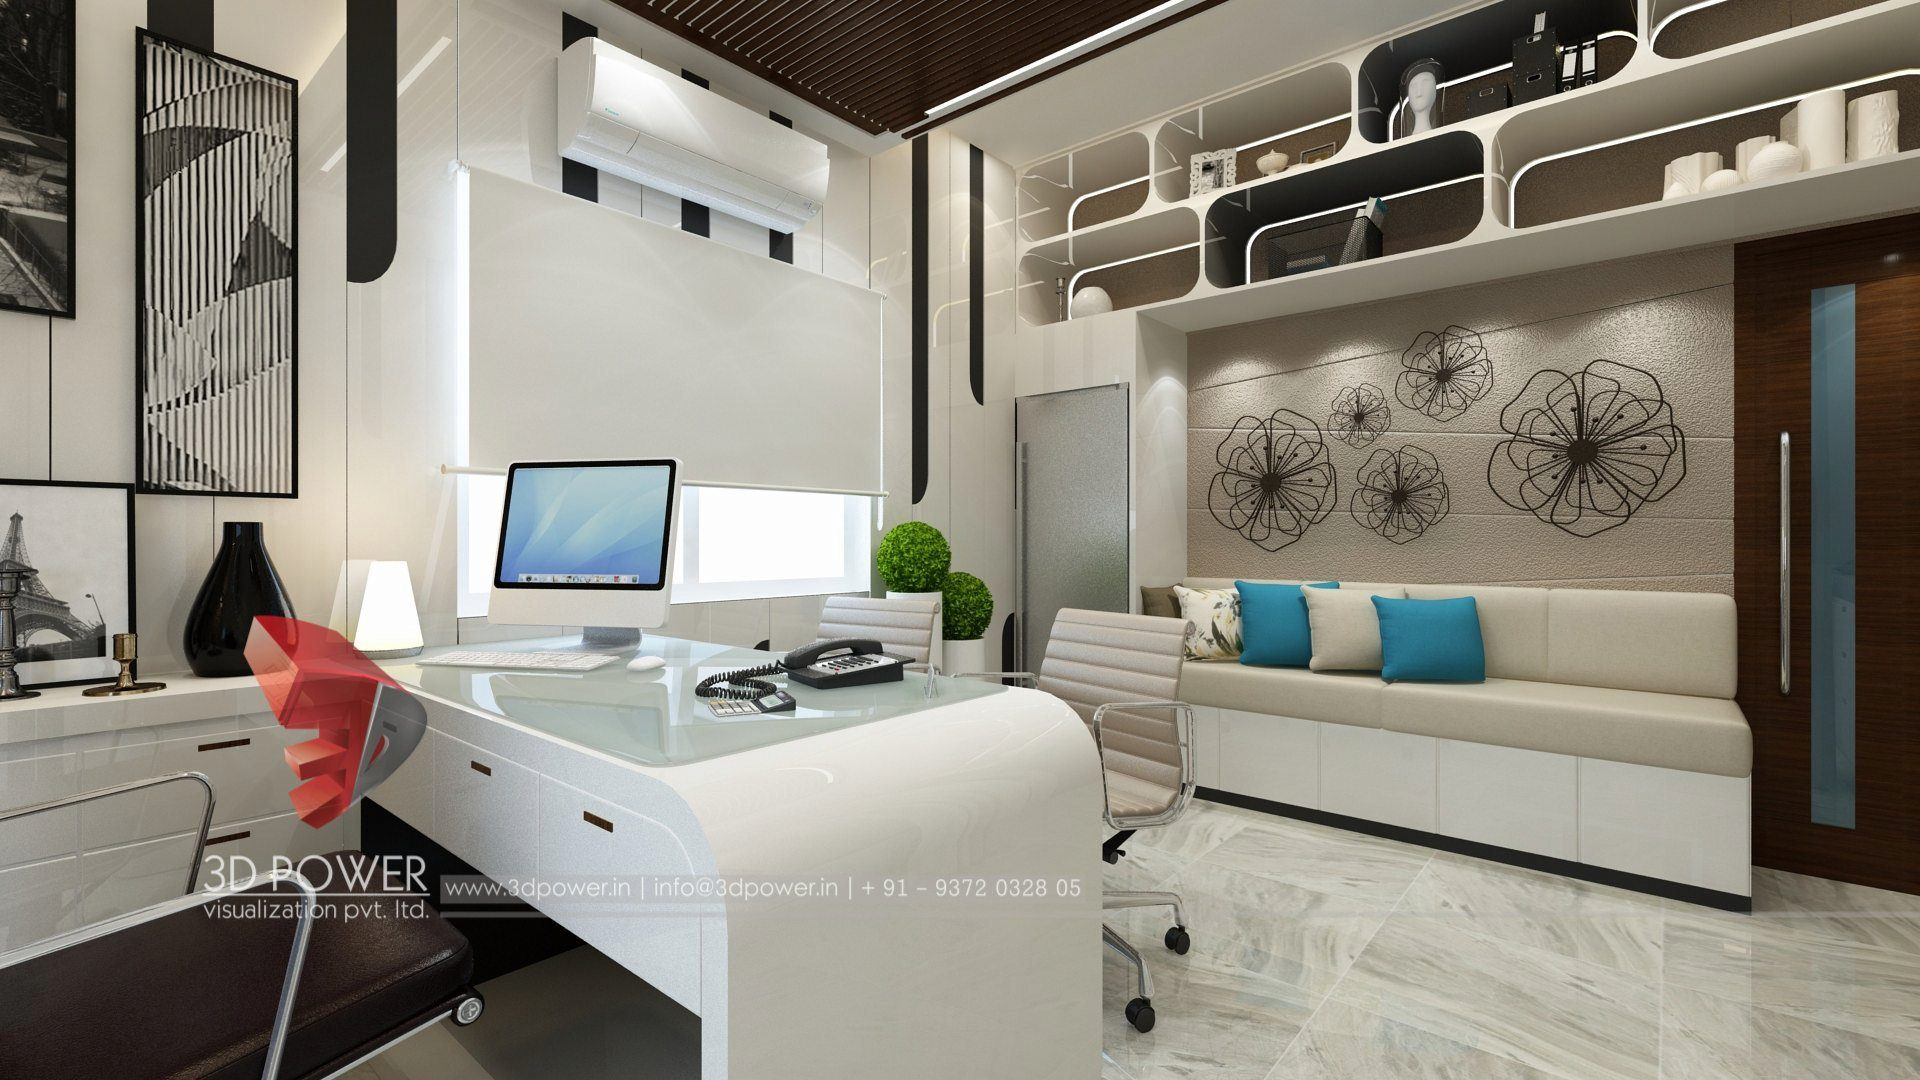 3d architectural design studio office interior design - Architectural Design Interior